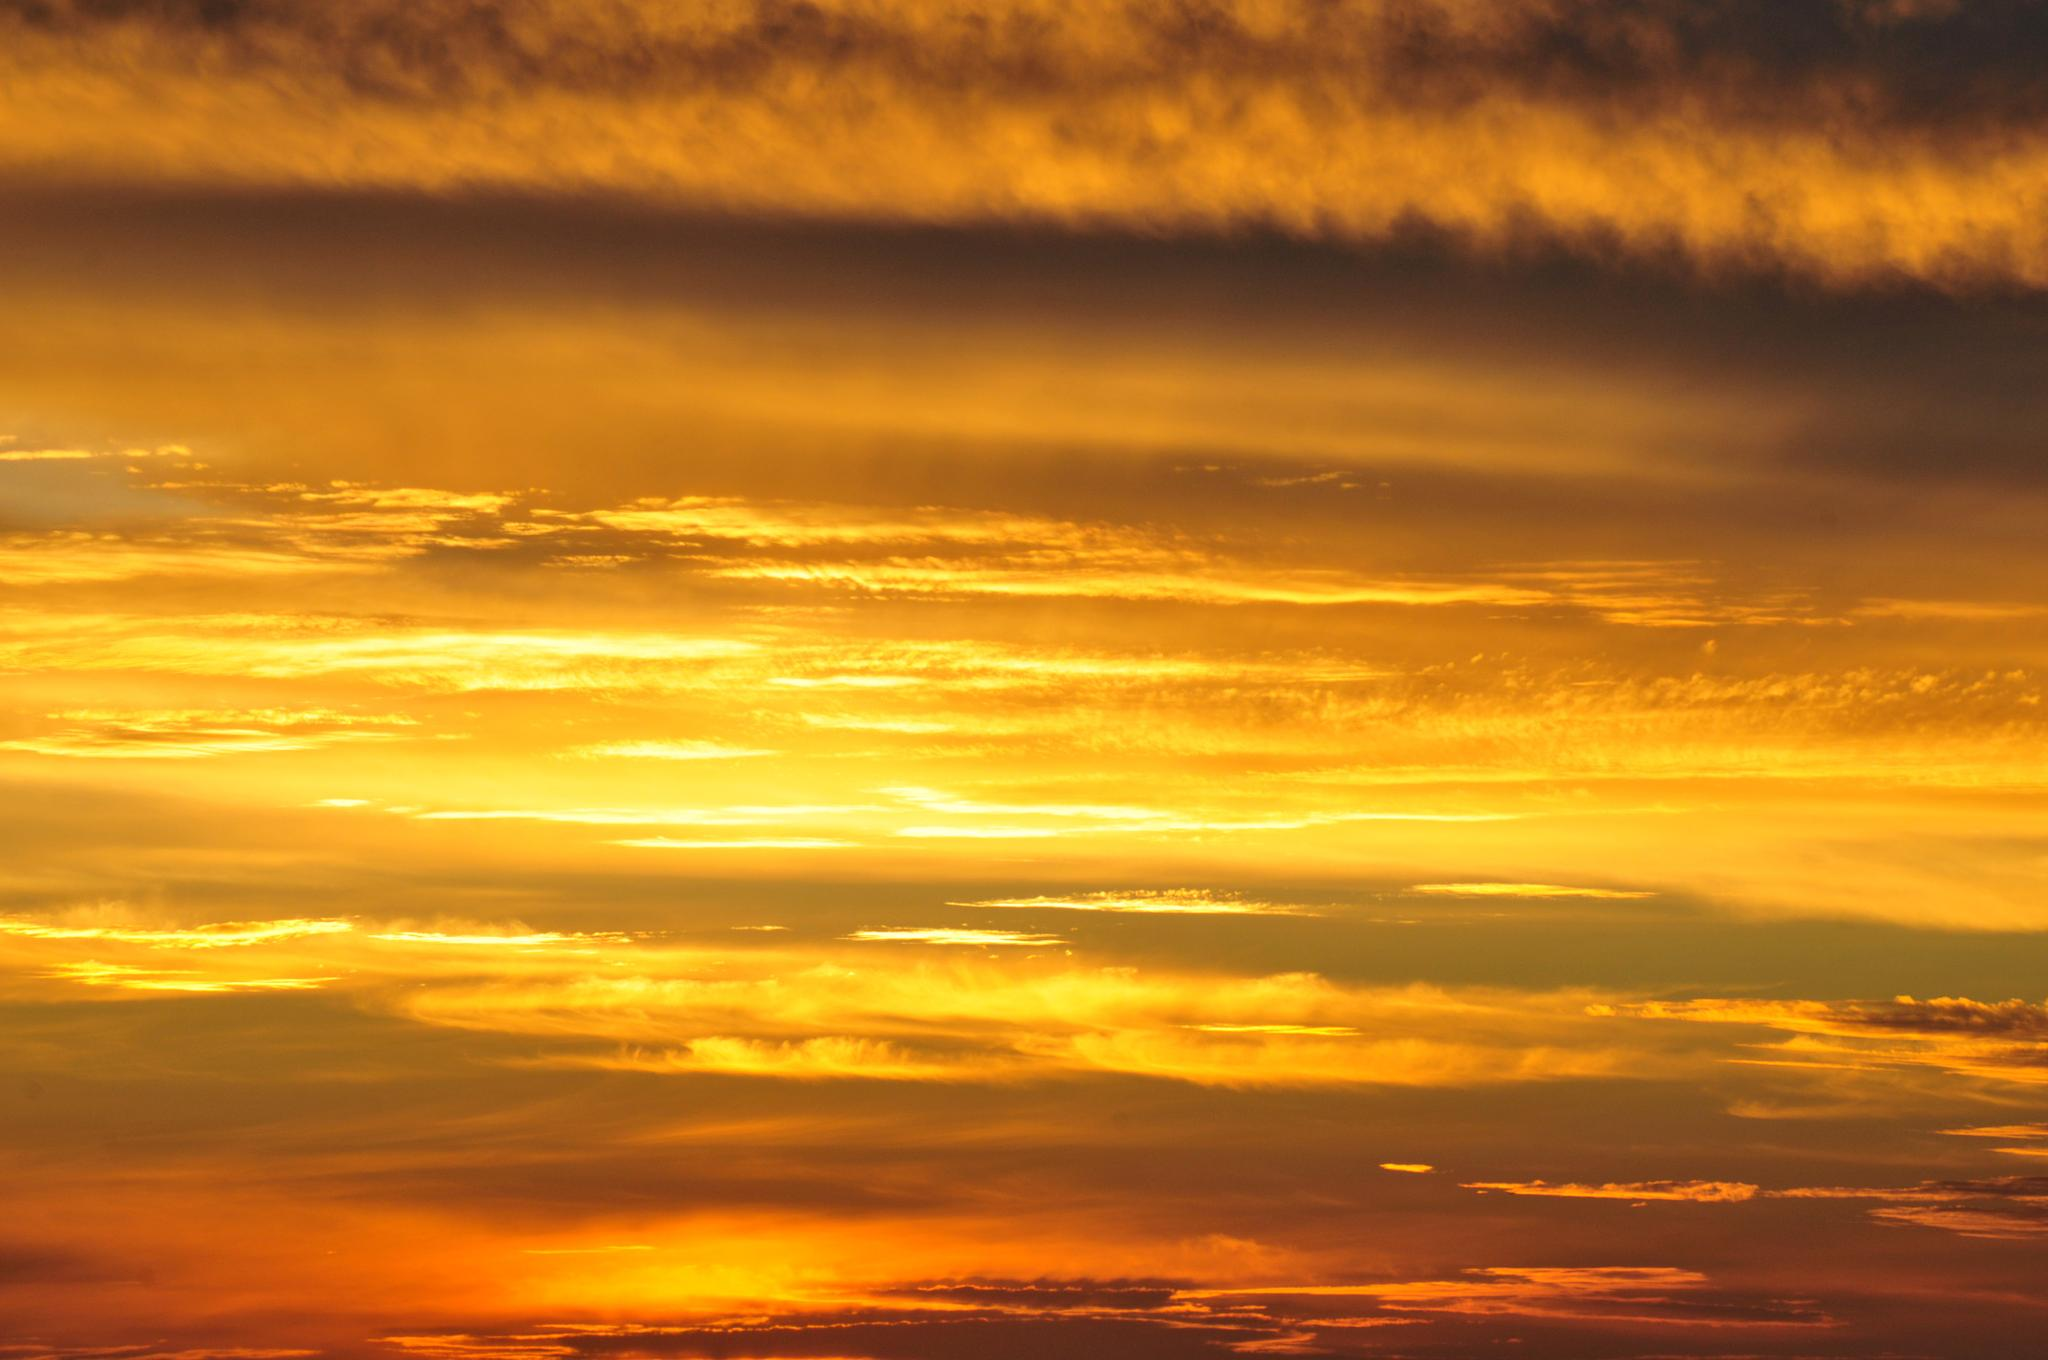 Sunset Gold by Marius